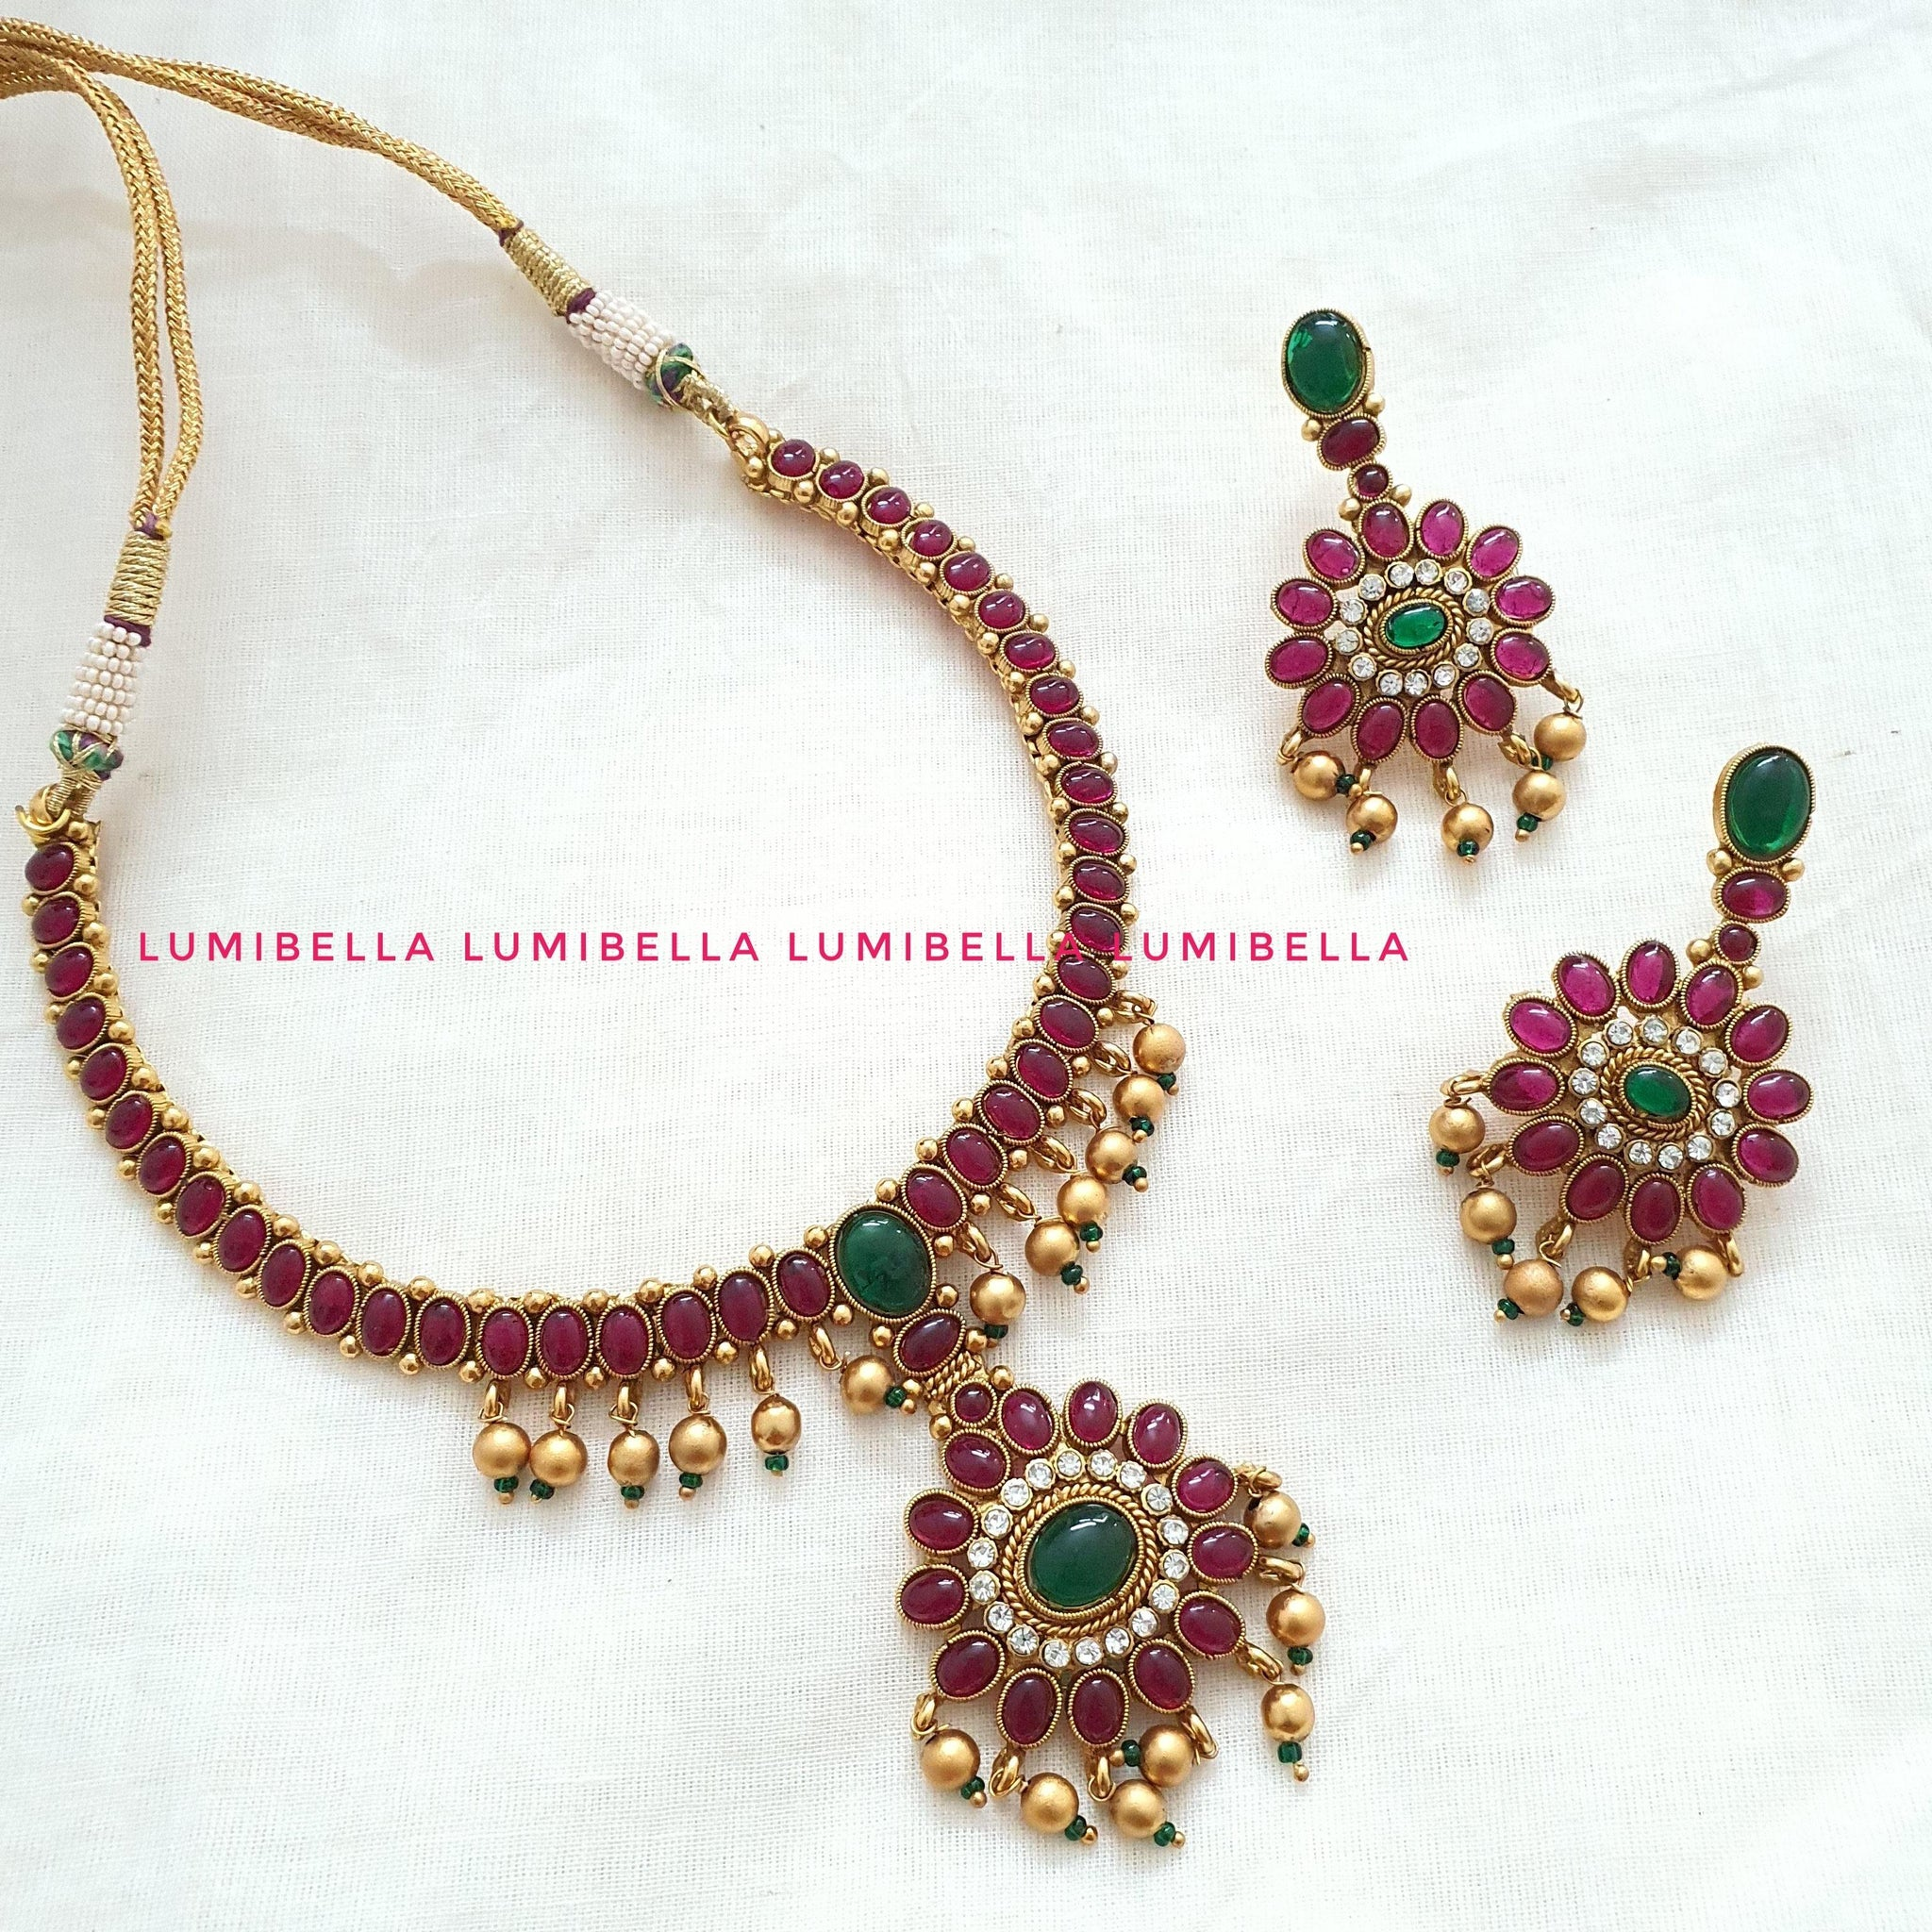 Kemp-attigai-necklace-lumibella